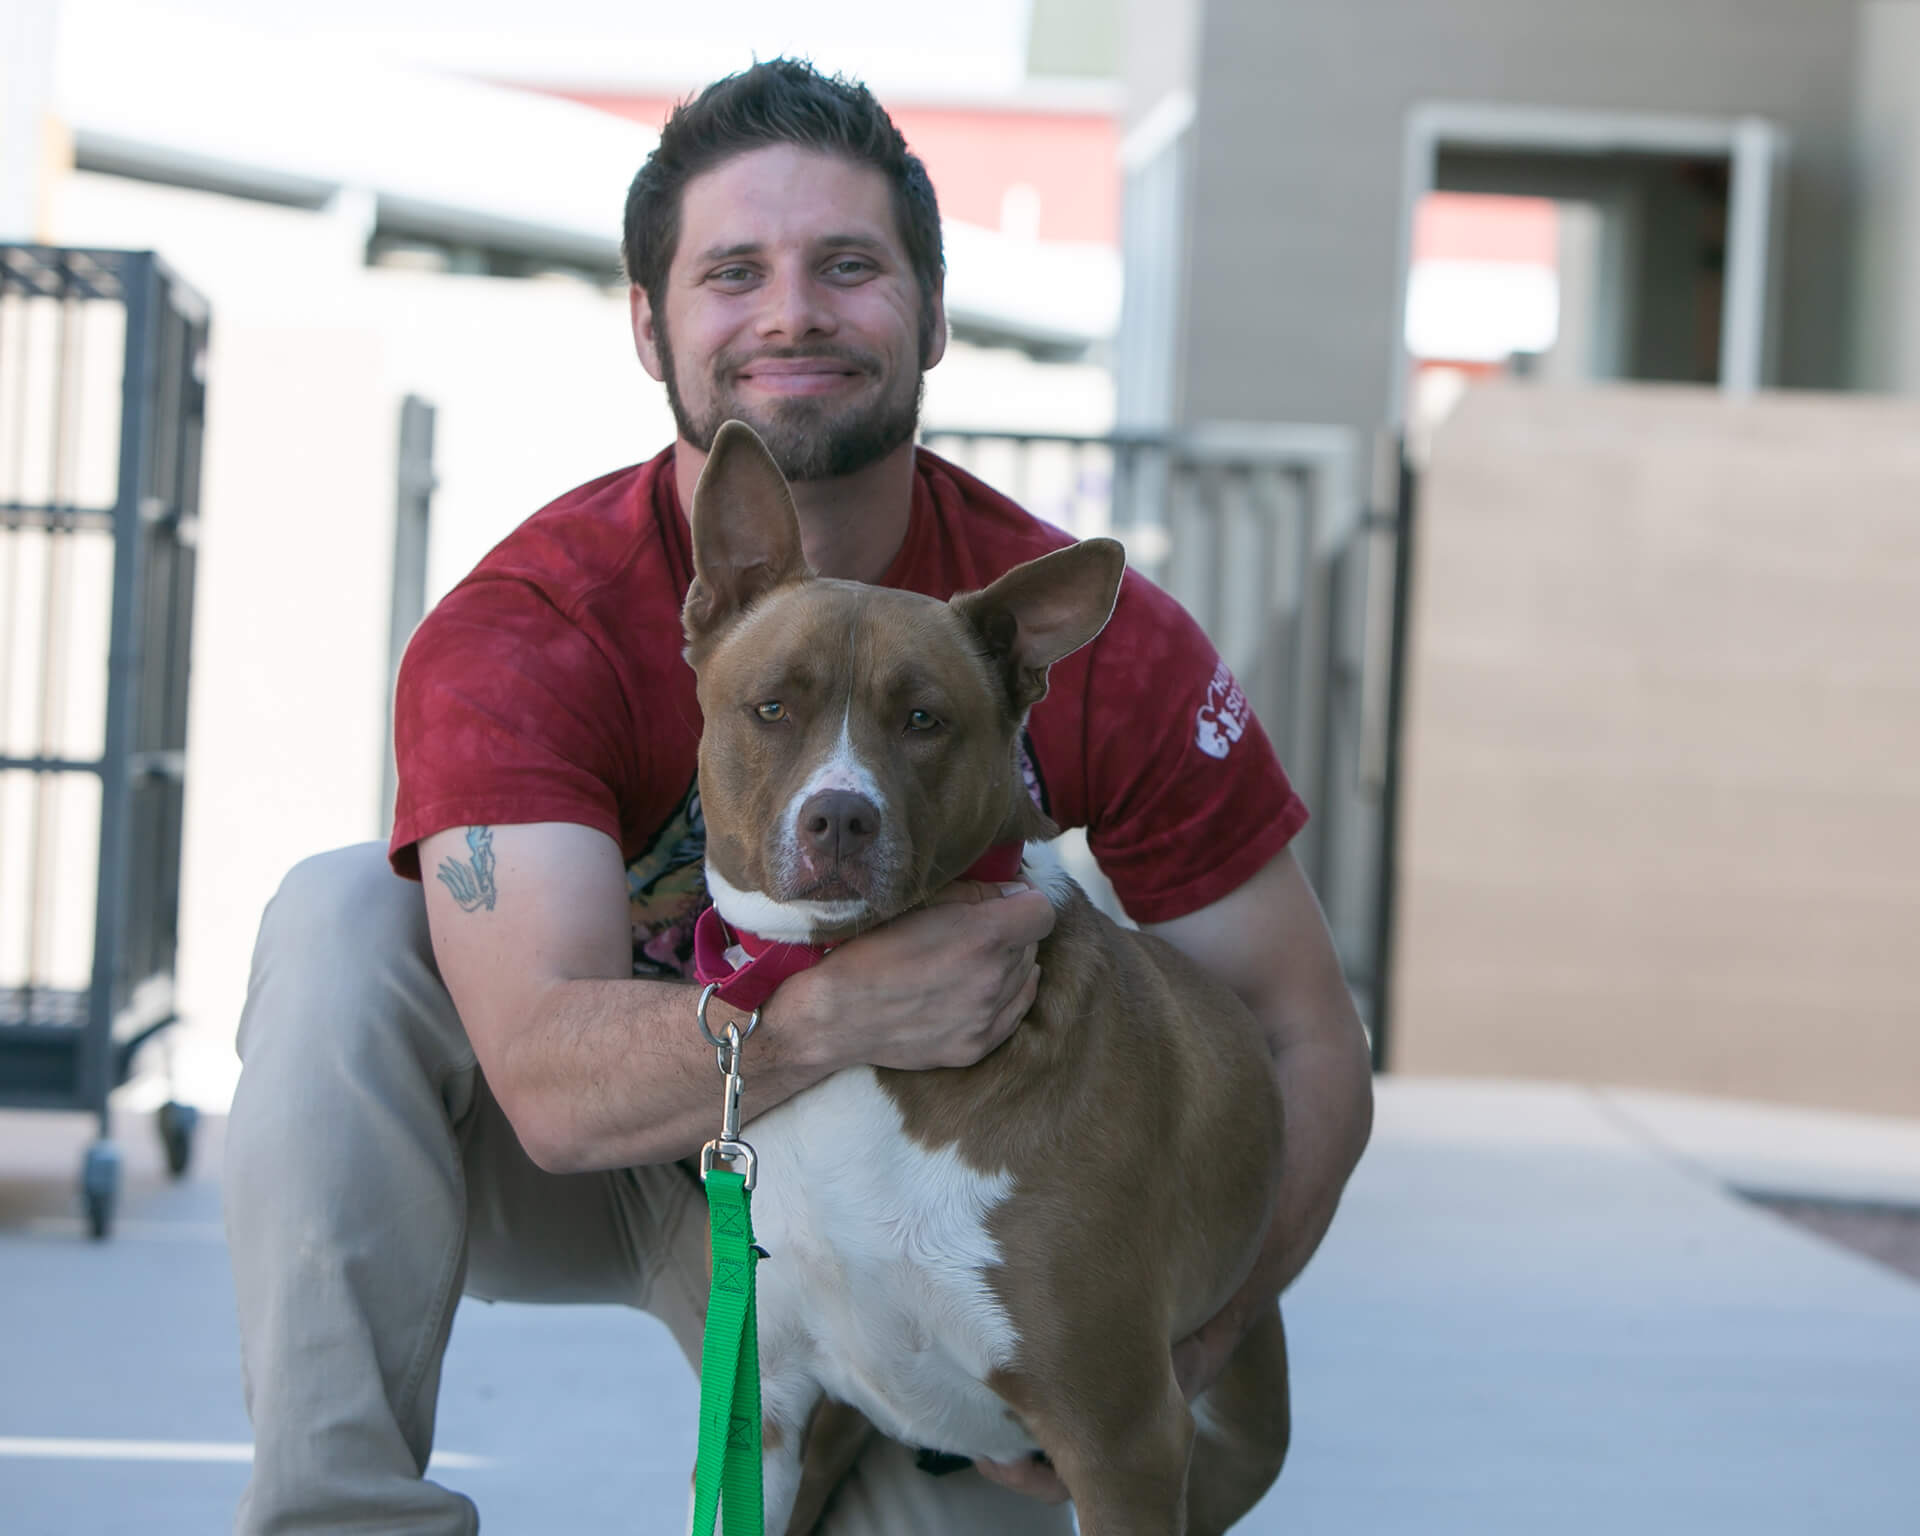 """""""People give up on these wonderful animals so quickly, and I made it my personal mission to make sure that these animals don't lose hope."""" – Steve, Canine Enrichment Specialist, Humane Society"""